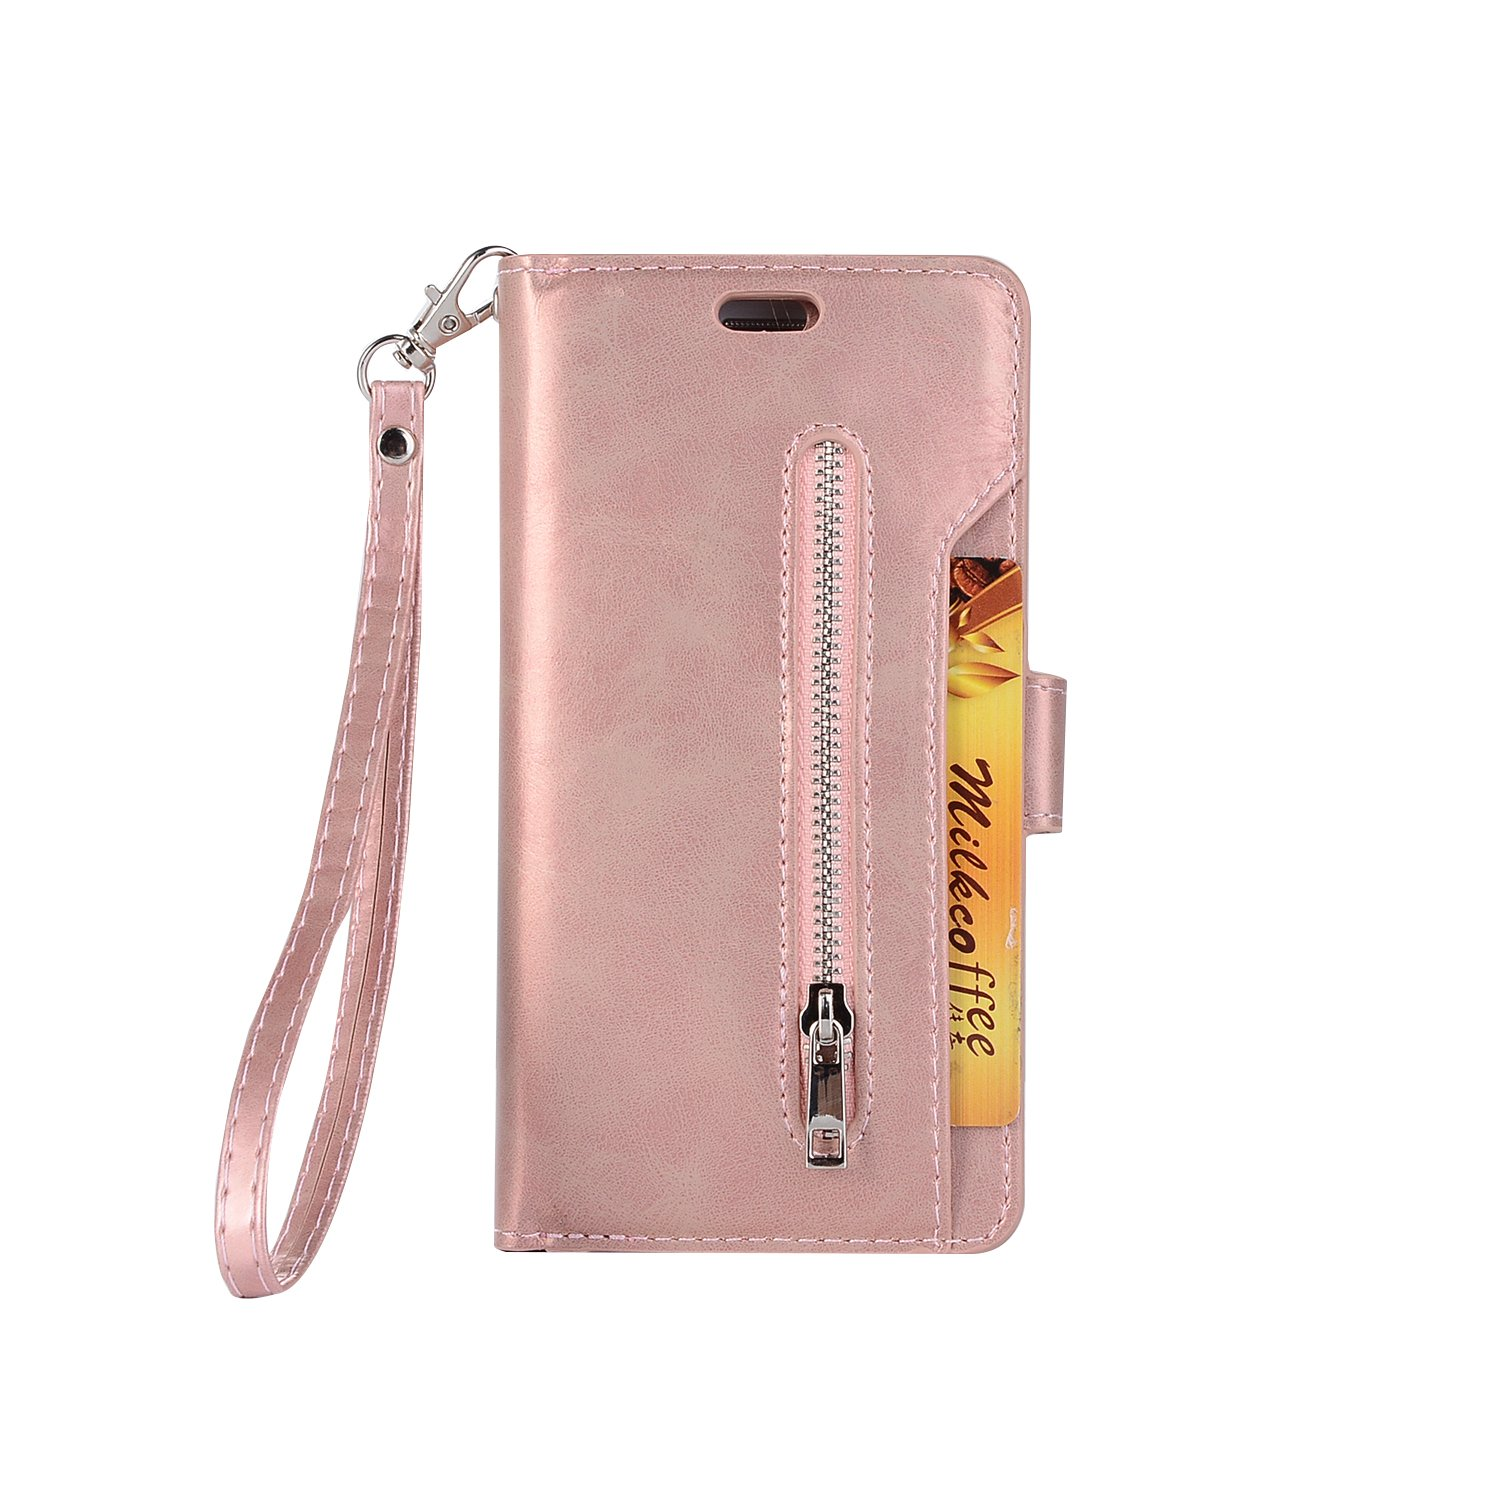 Galaxy S7 Edge Wallet Case, Leather [9 Card slots] [photo & wallet pocket] (Rose Gold)